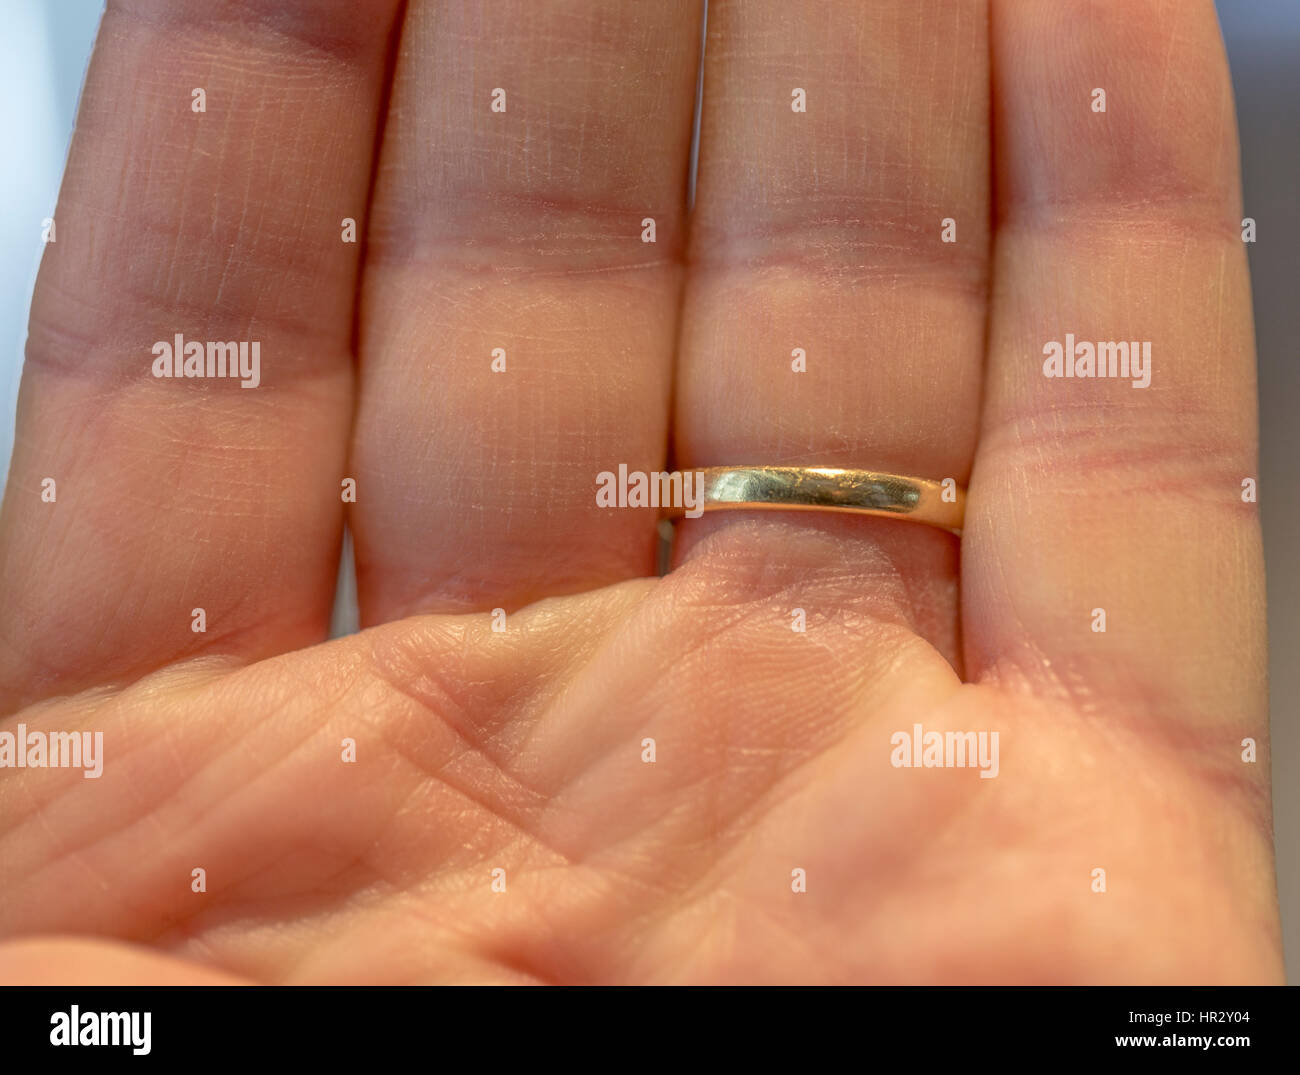 Man's outstretched fingers wearing a gold wedding ring - Stock Image